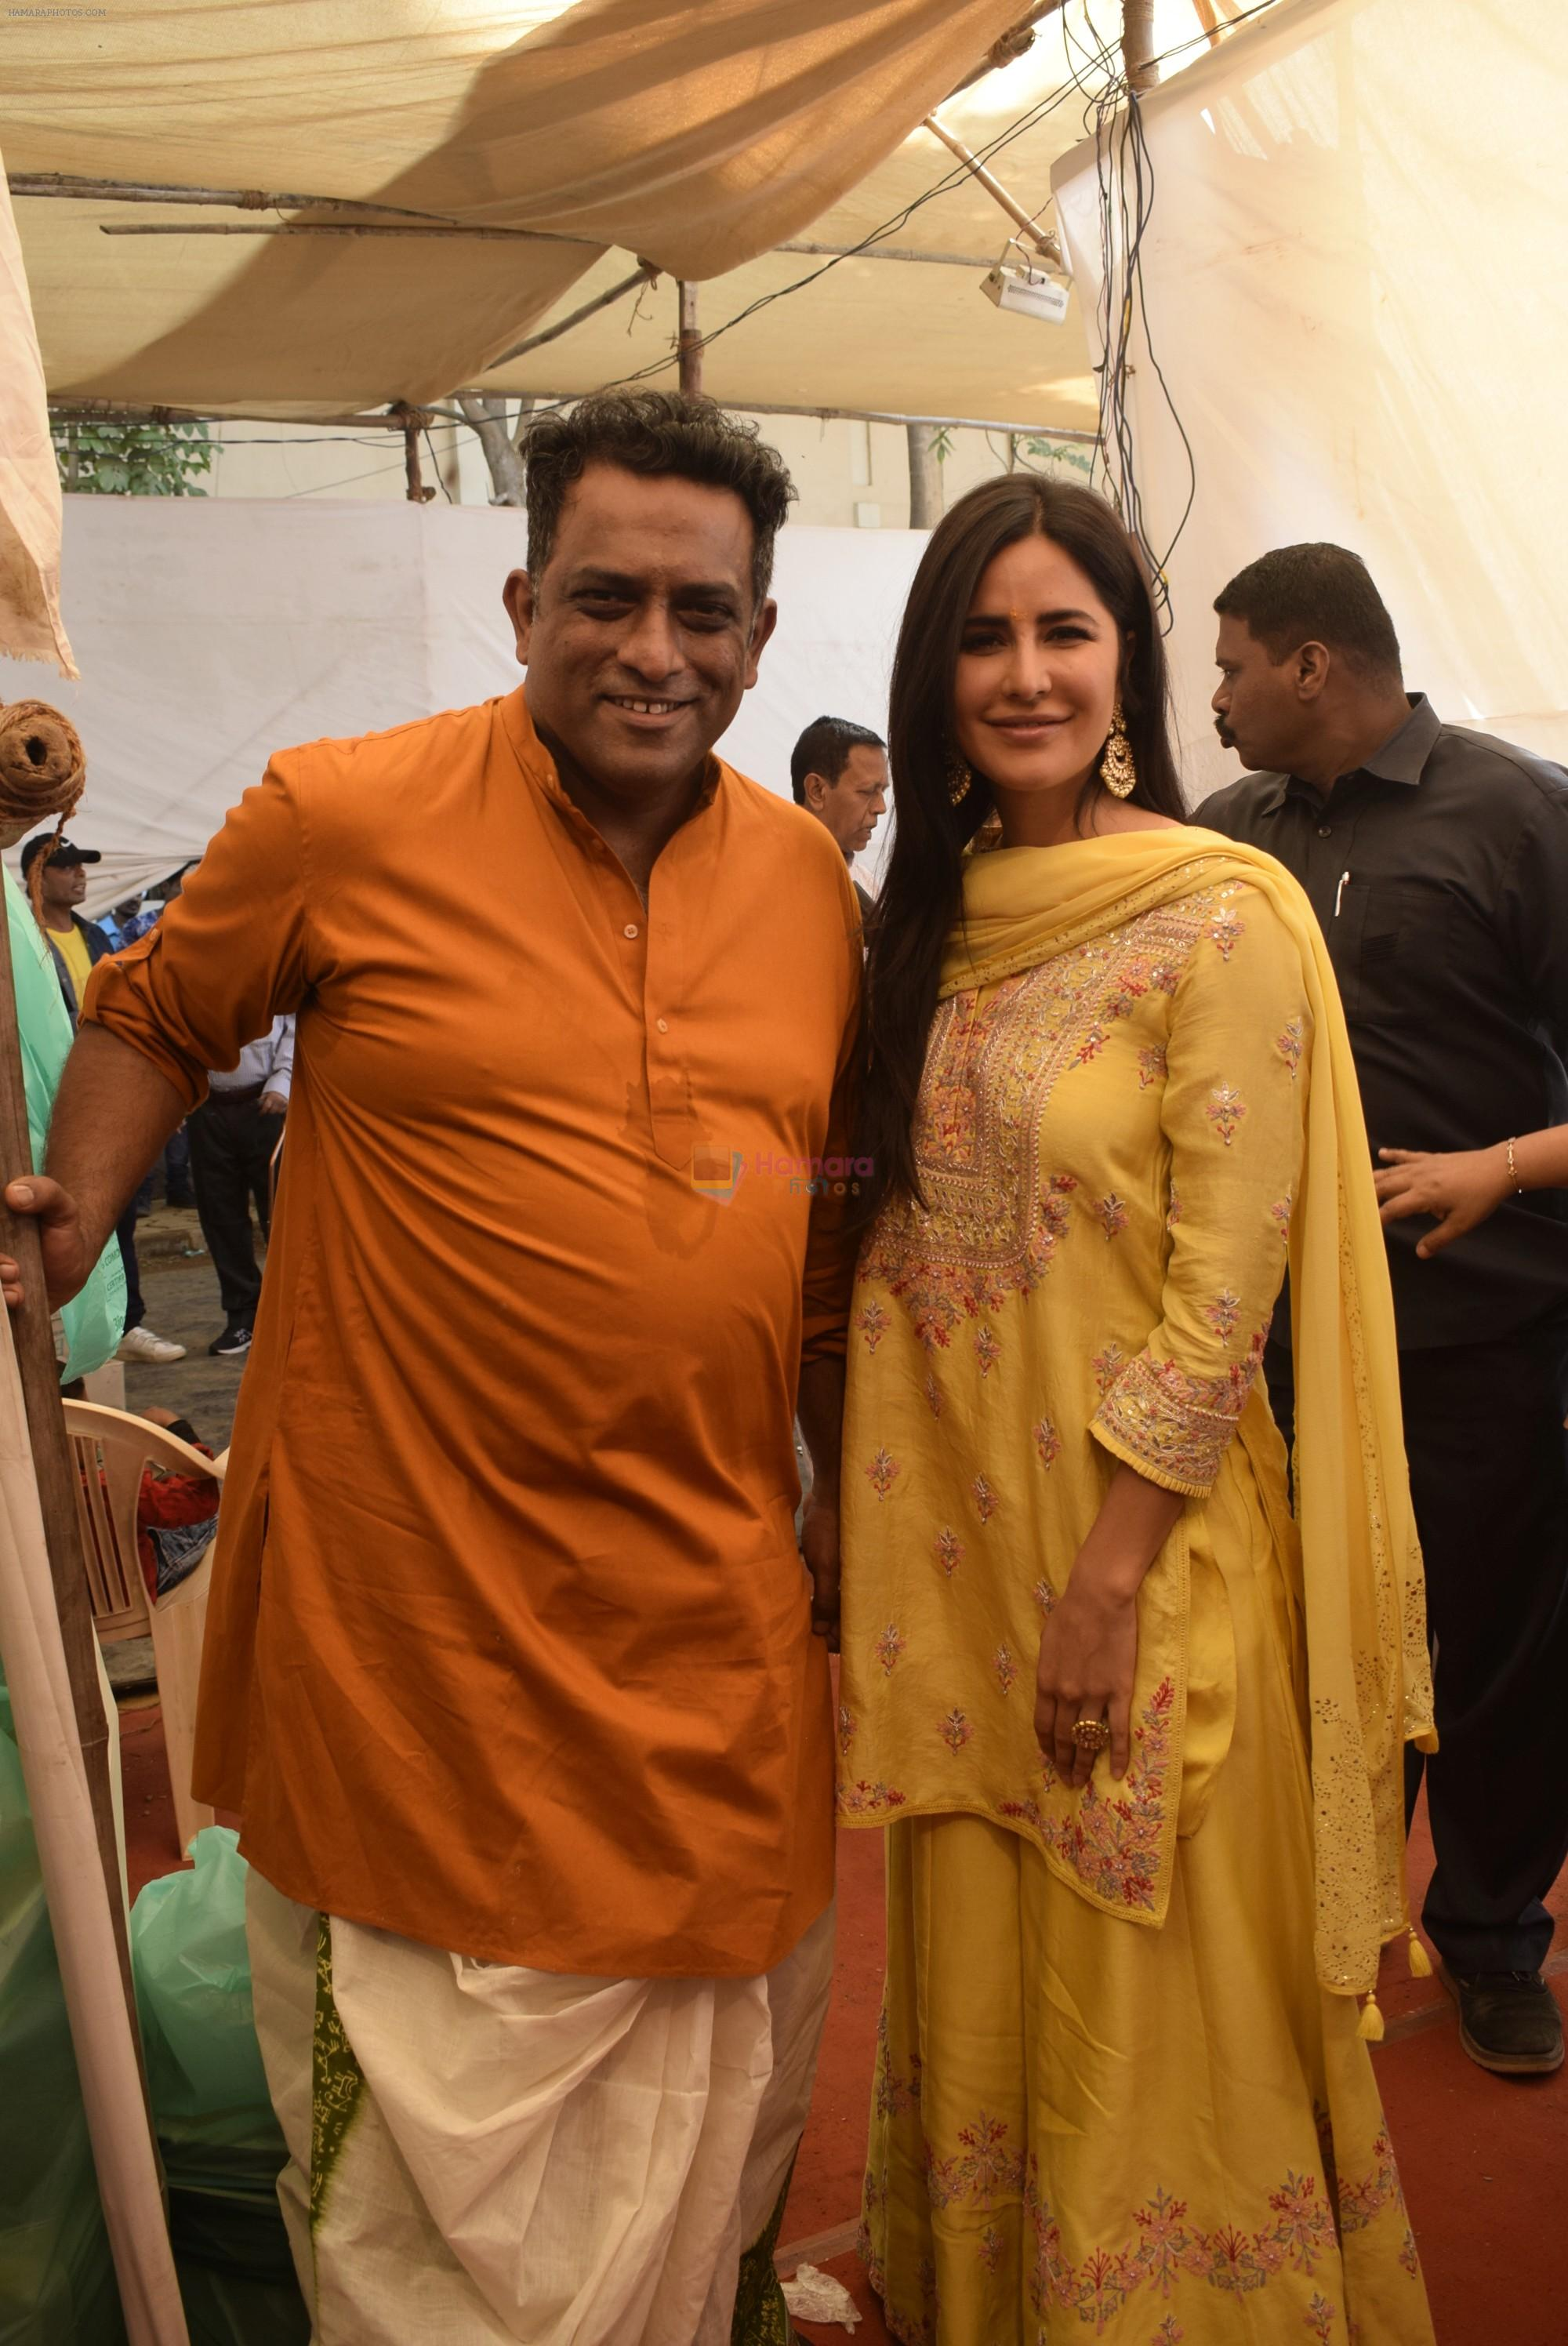 Katrina Kaif at Saraswati pujan at Anurag Basu's house in goregaon on 10th Feb 2019